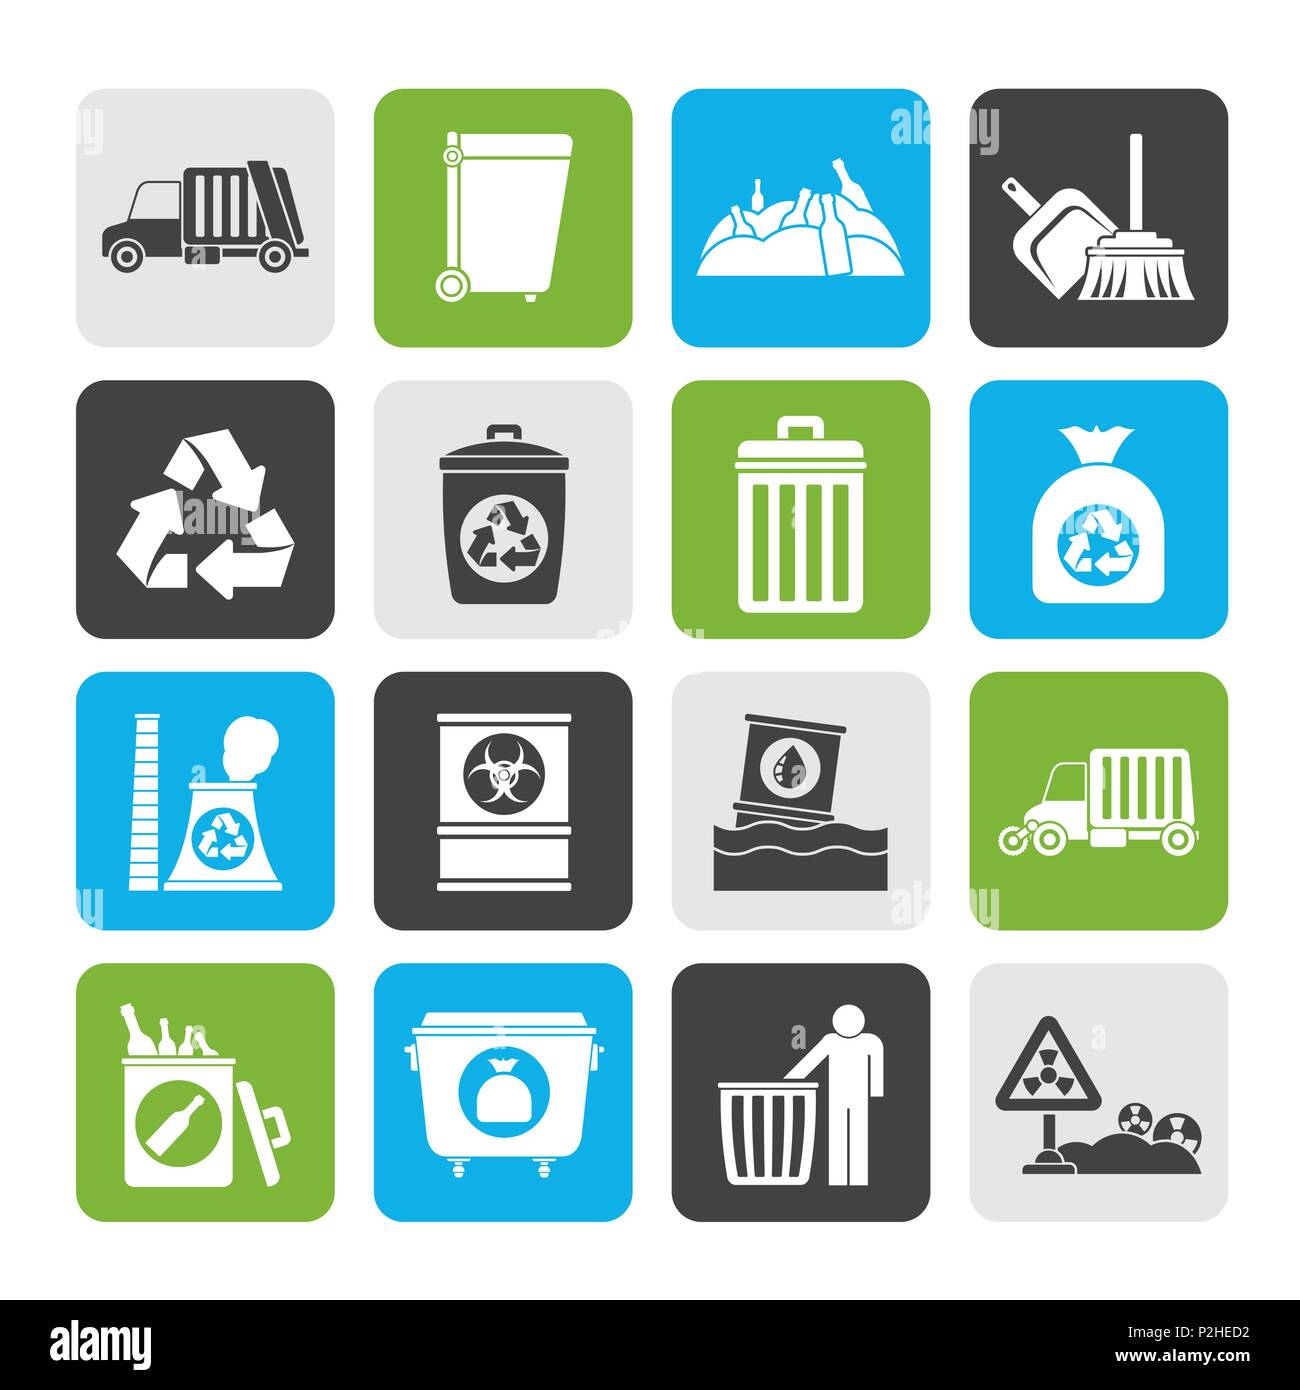 Silhouette Garbage, cleaning and rubbish icons - vector icon set - Stock Vector